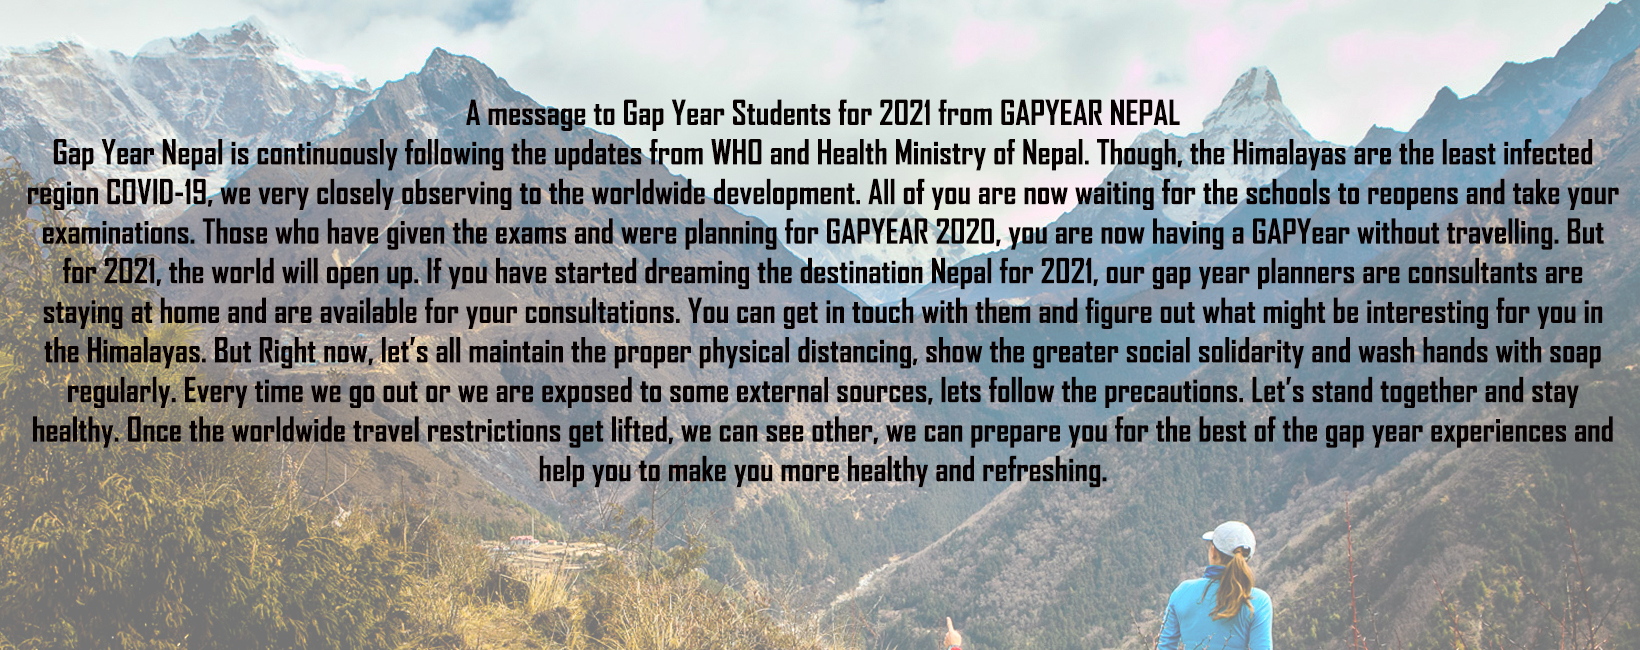 Your GAP YEAR NEPAL TEAM from Himalayas